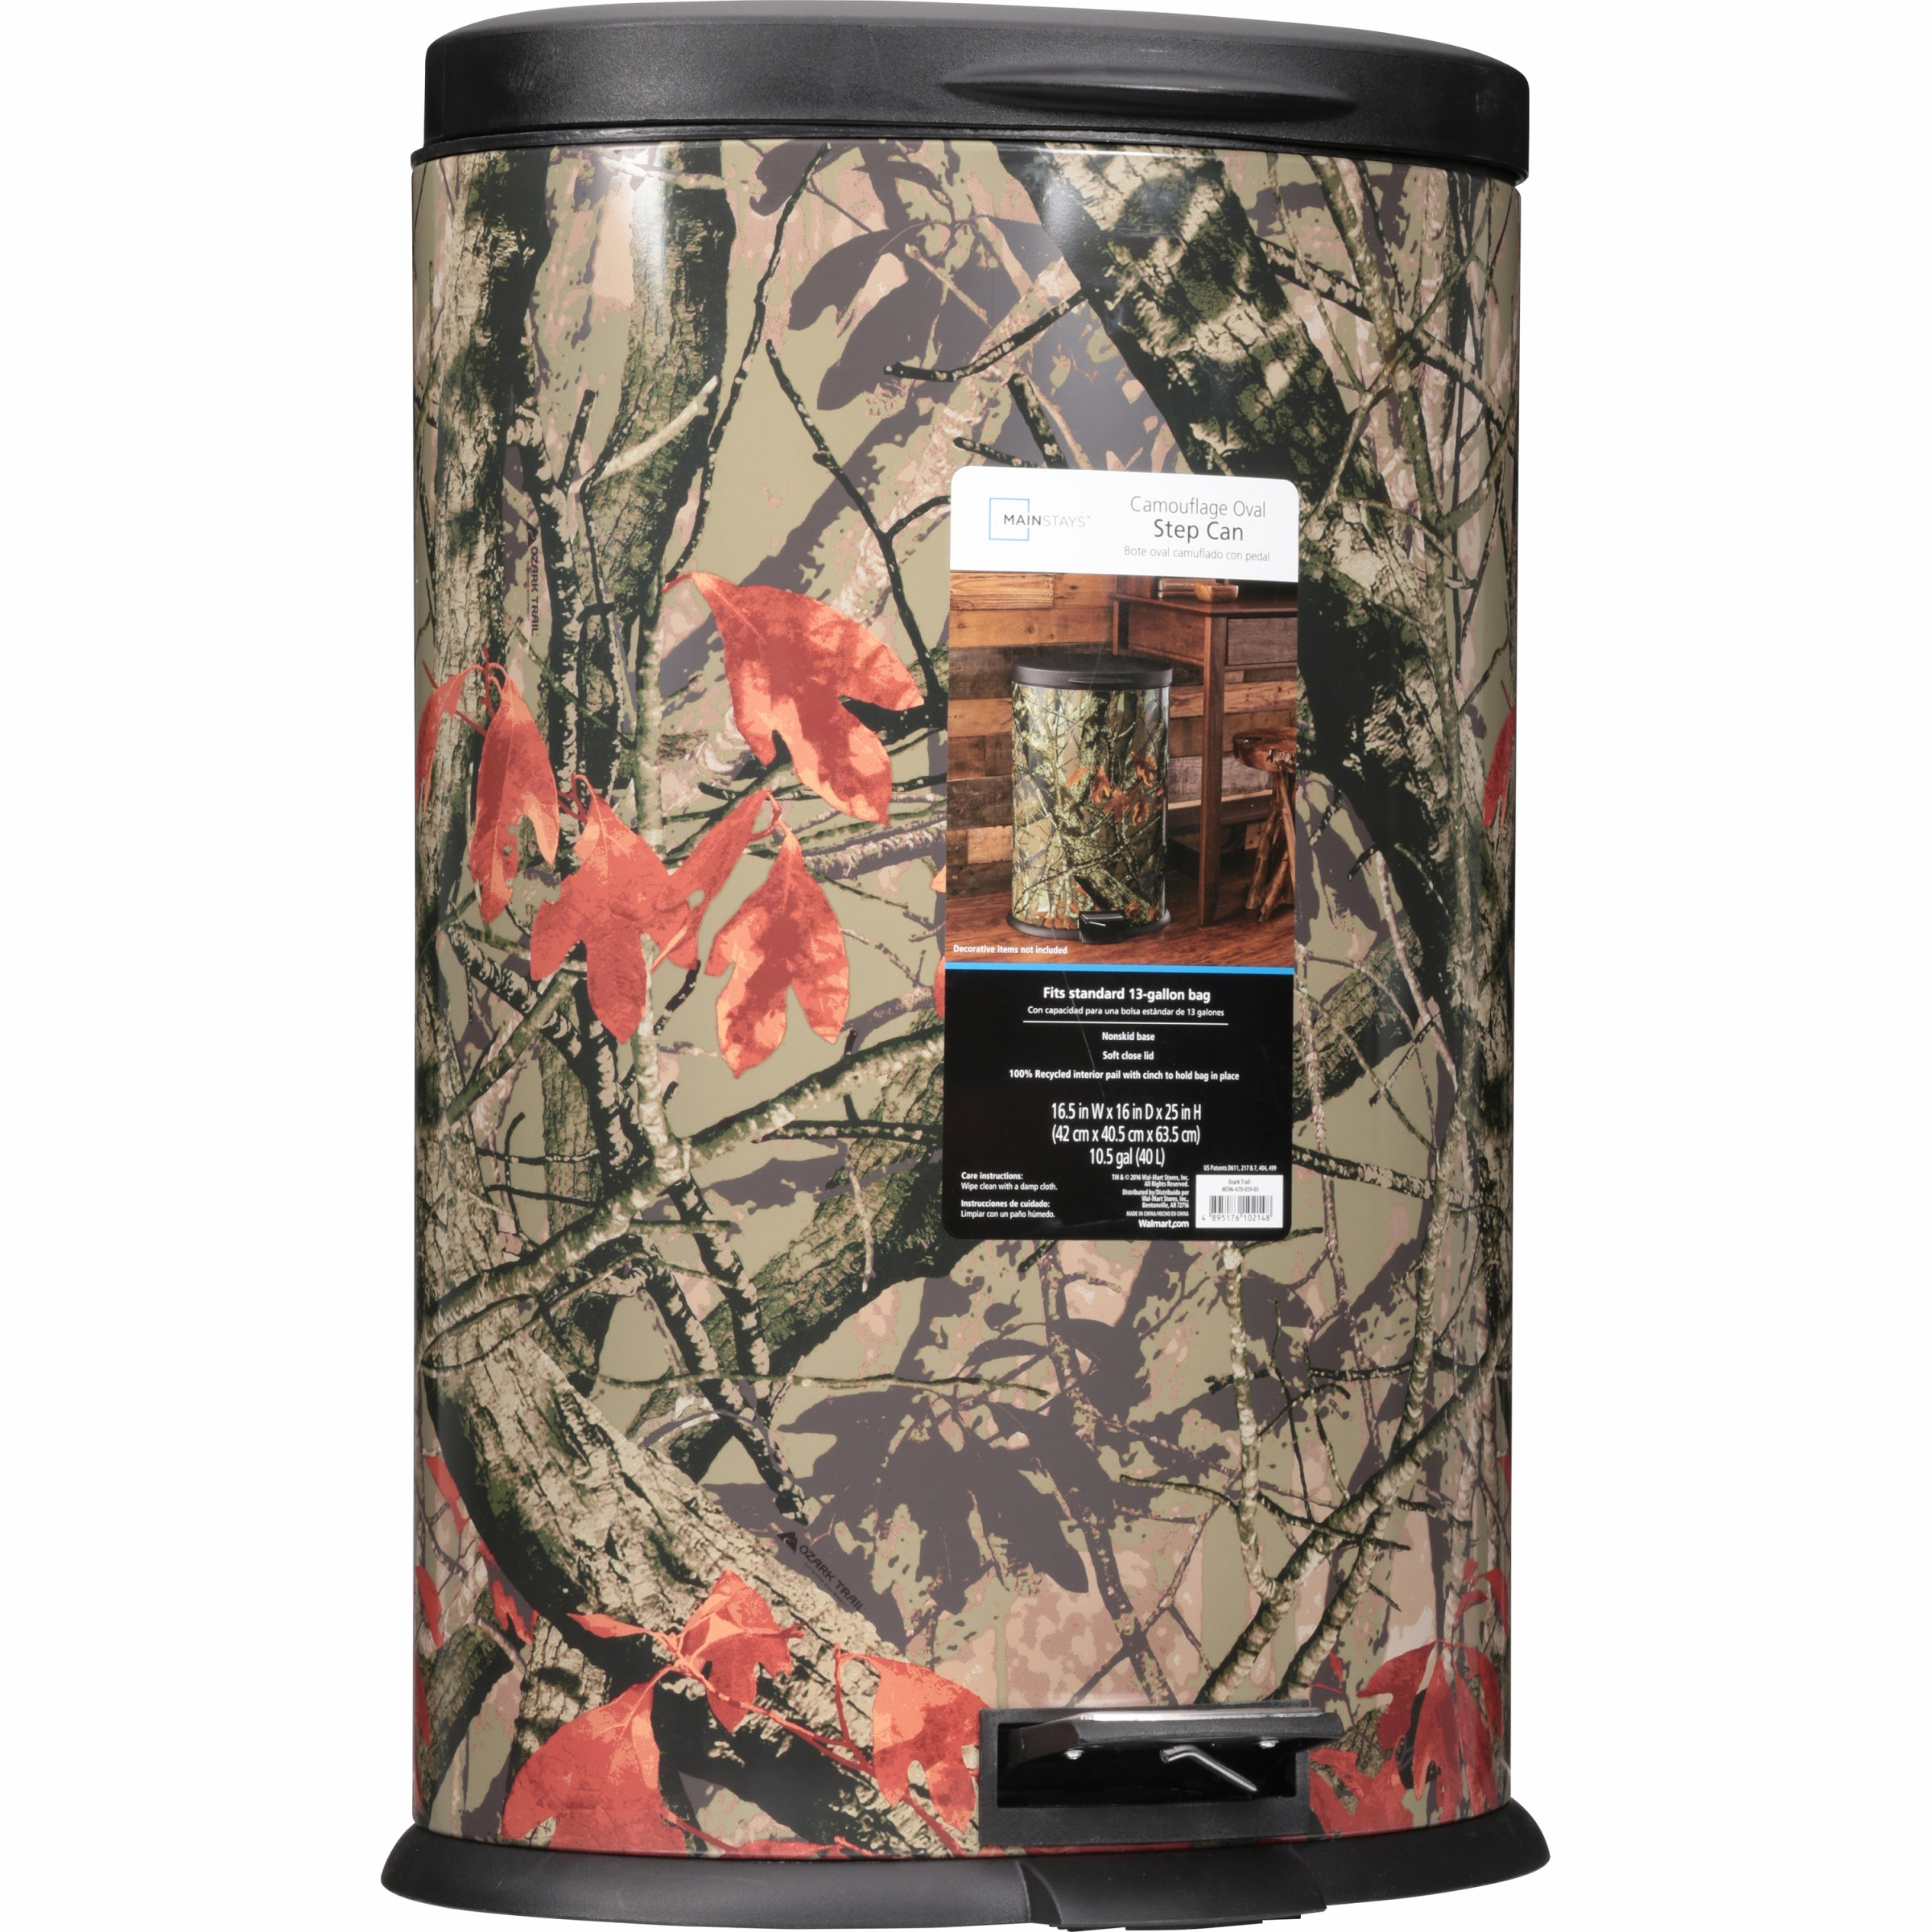 Mainstays 10.5 Gallon Oval Camo Waste Can